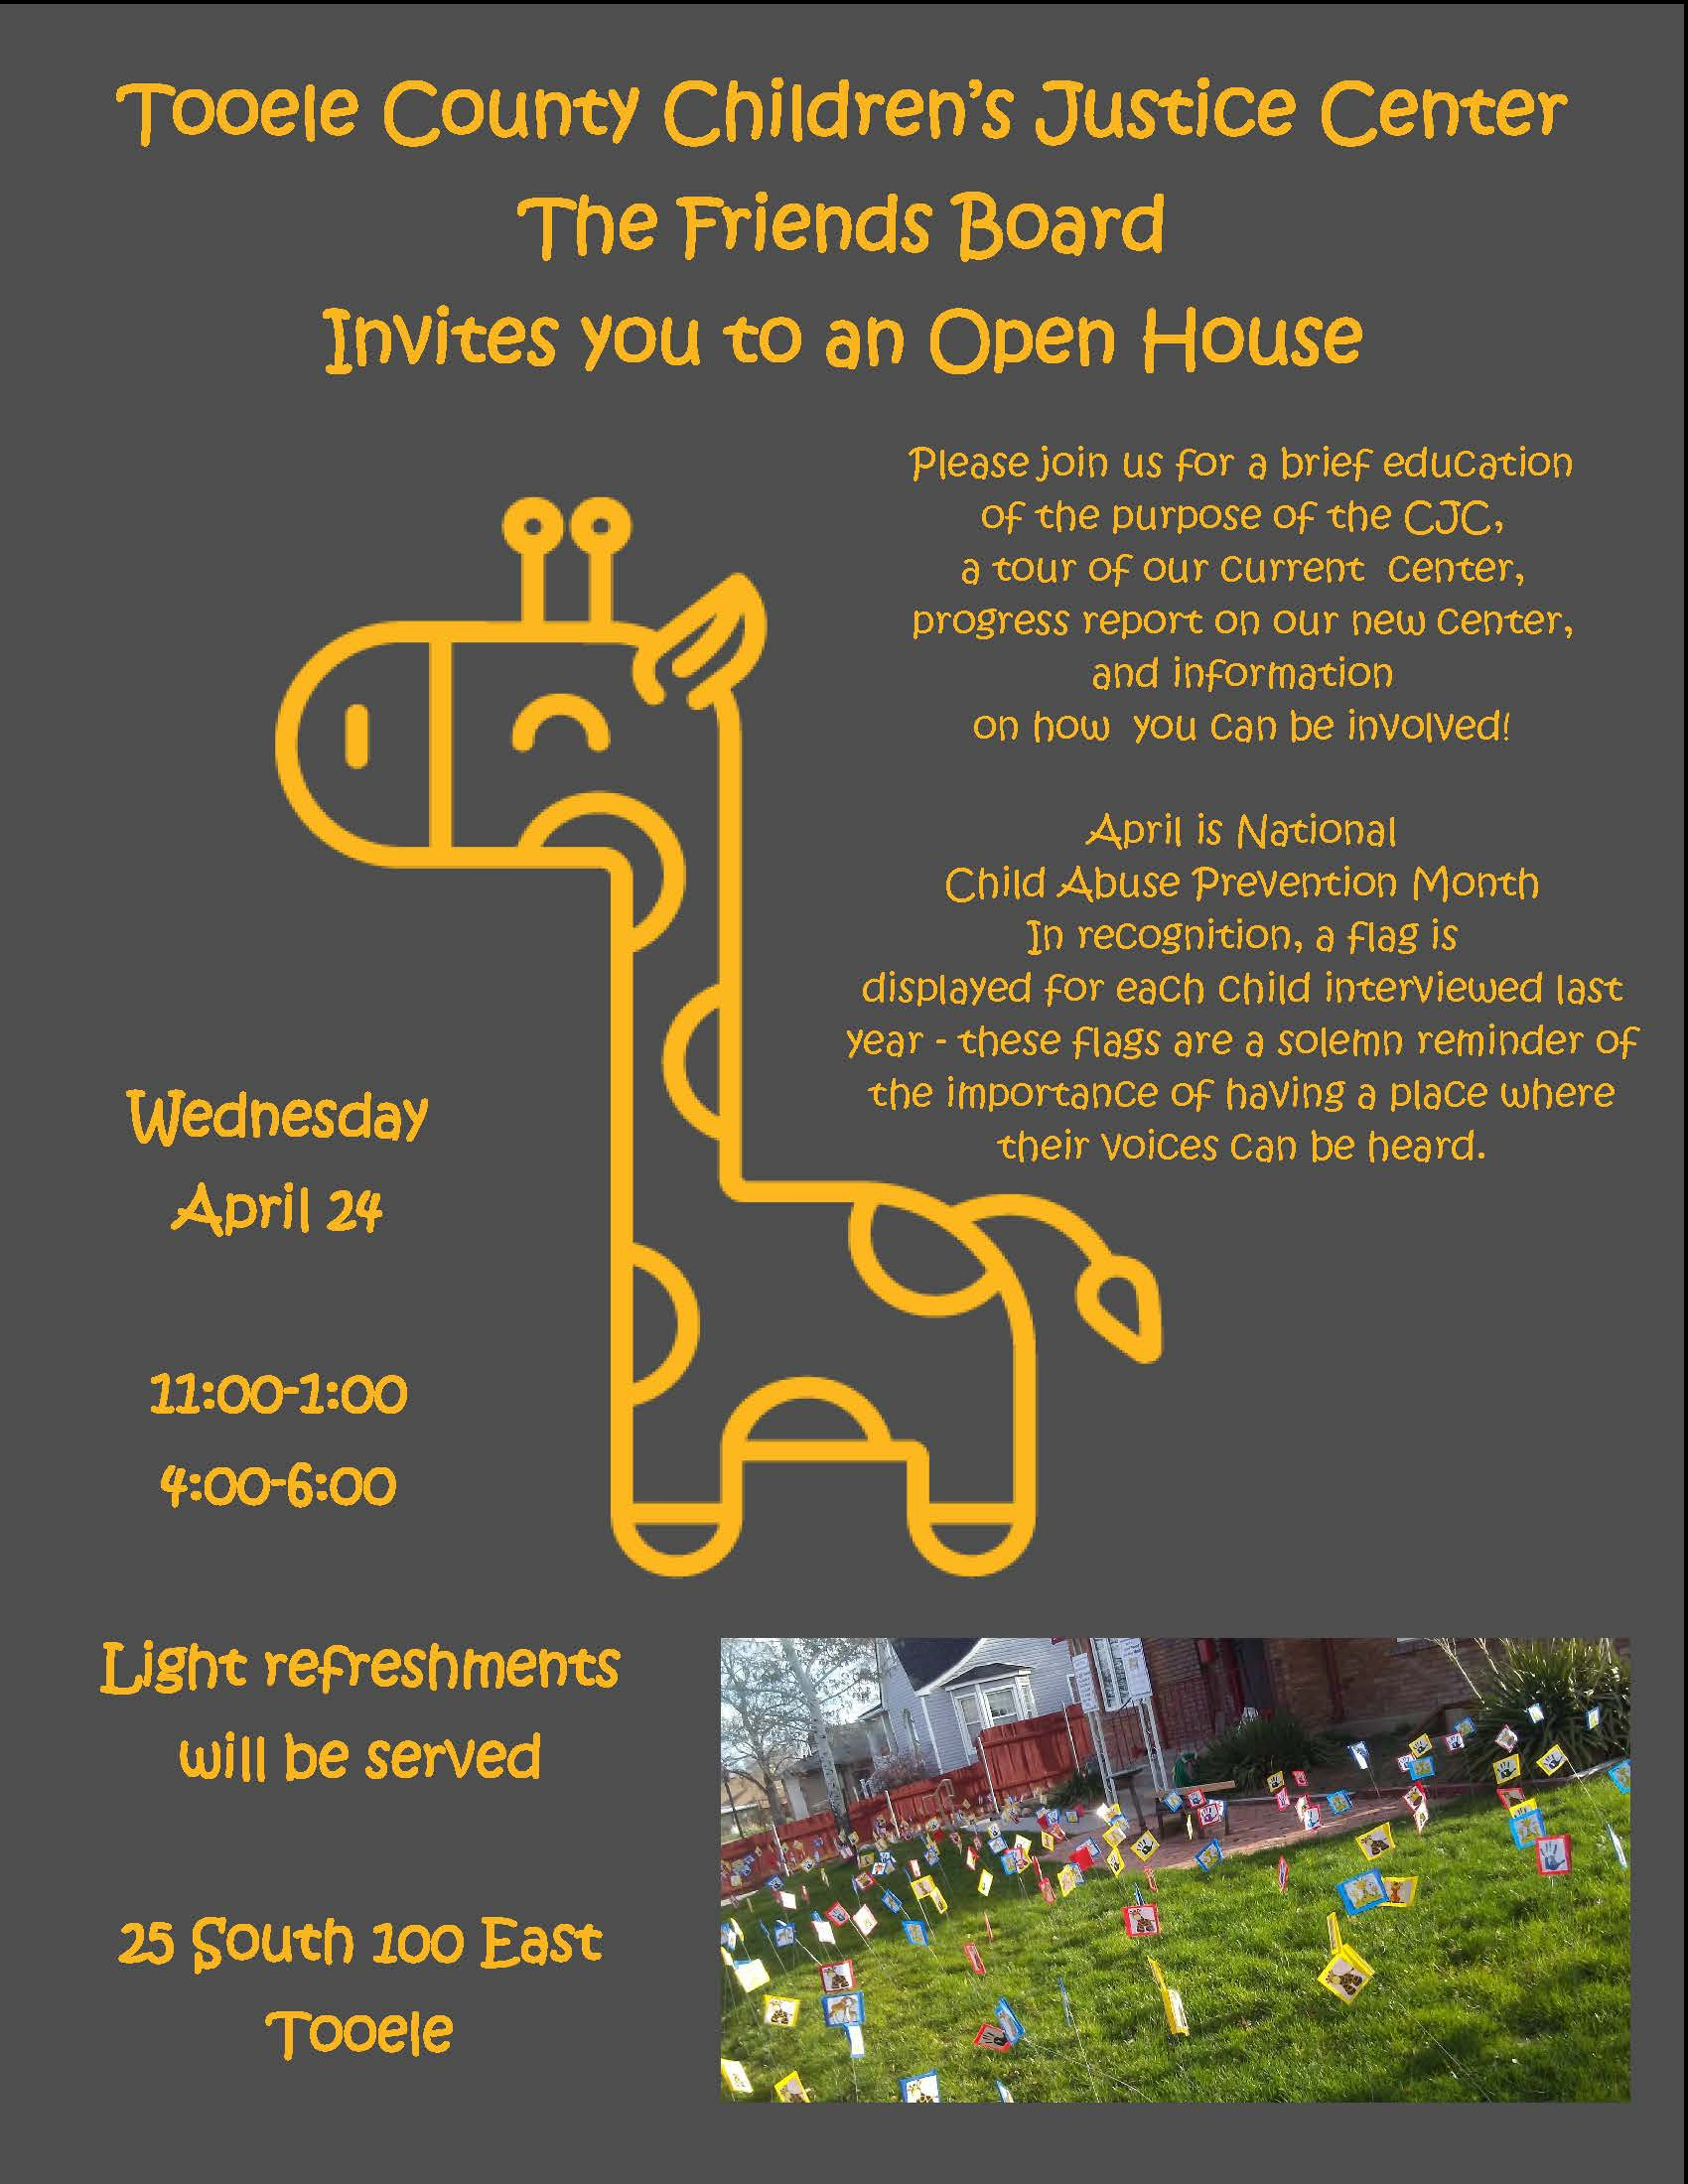 Tooele County Children's Justice Center Open House @ Children's Justice Center